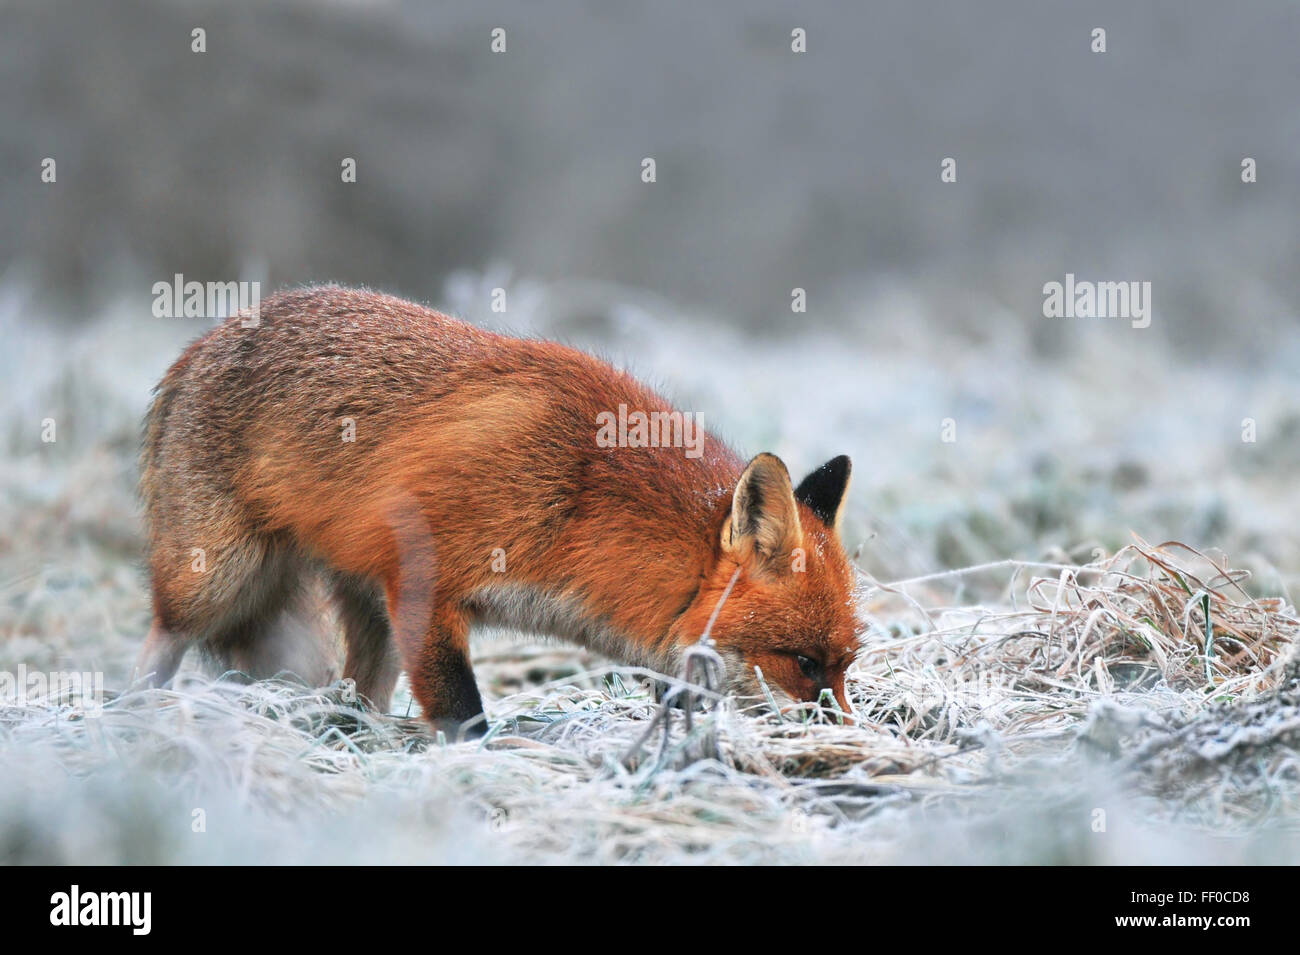 Red fox, searching for food on a frost covered field - Stock Image